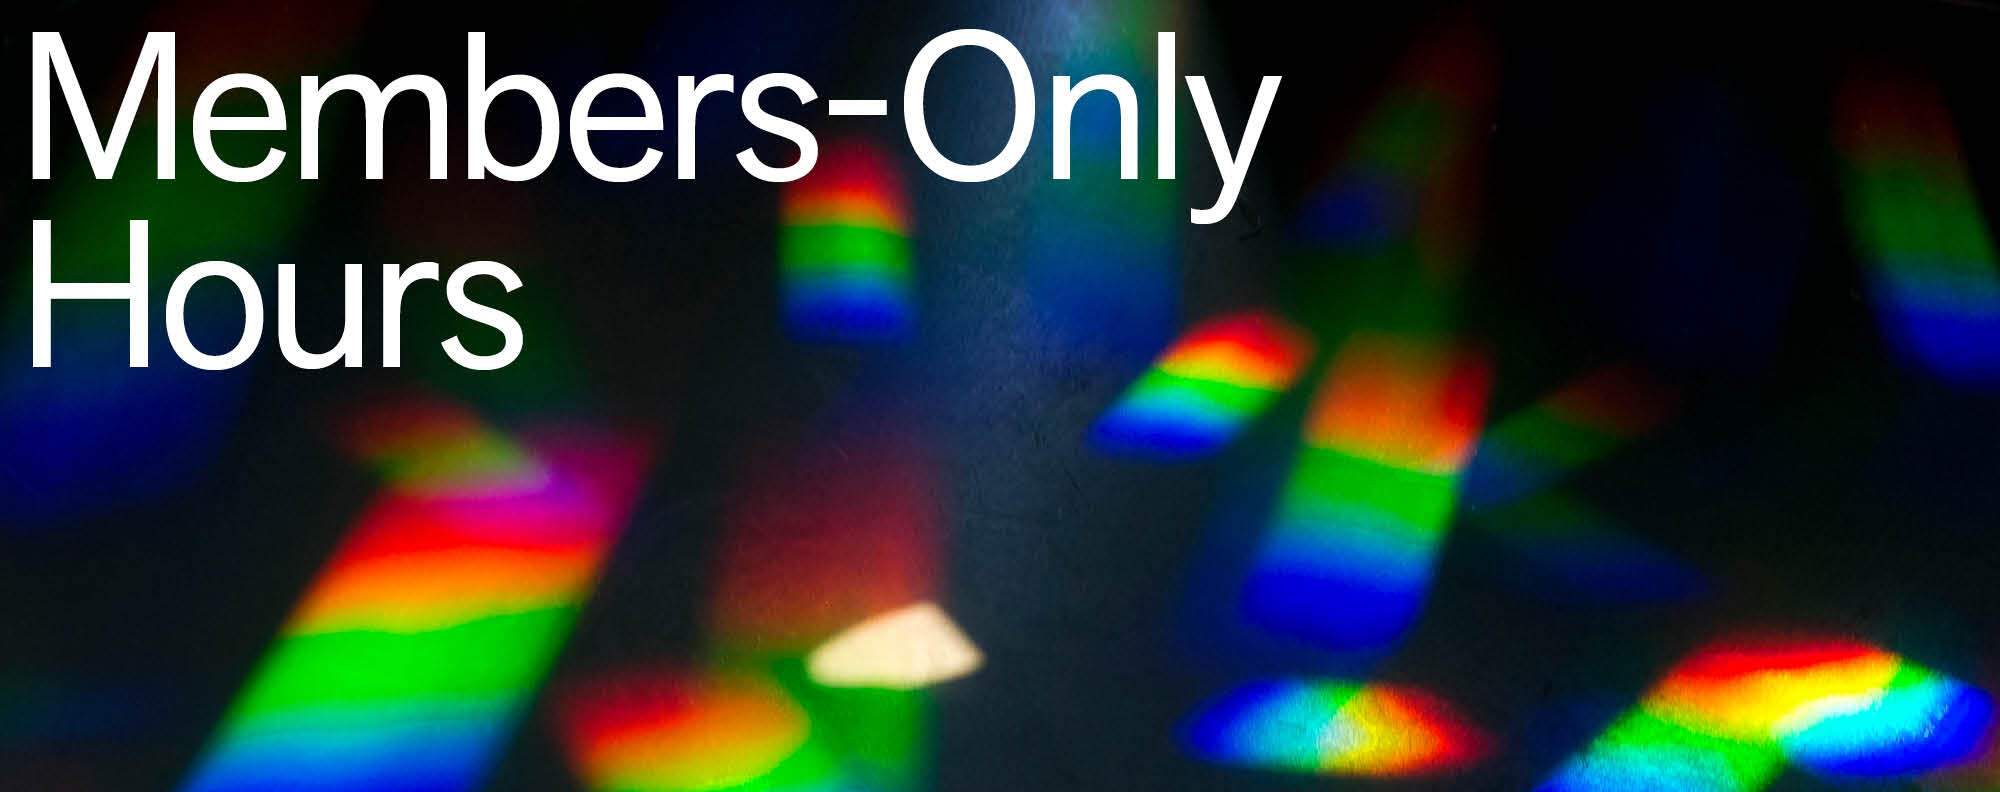 Members-Only Hours